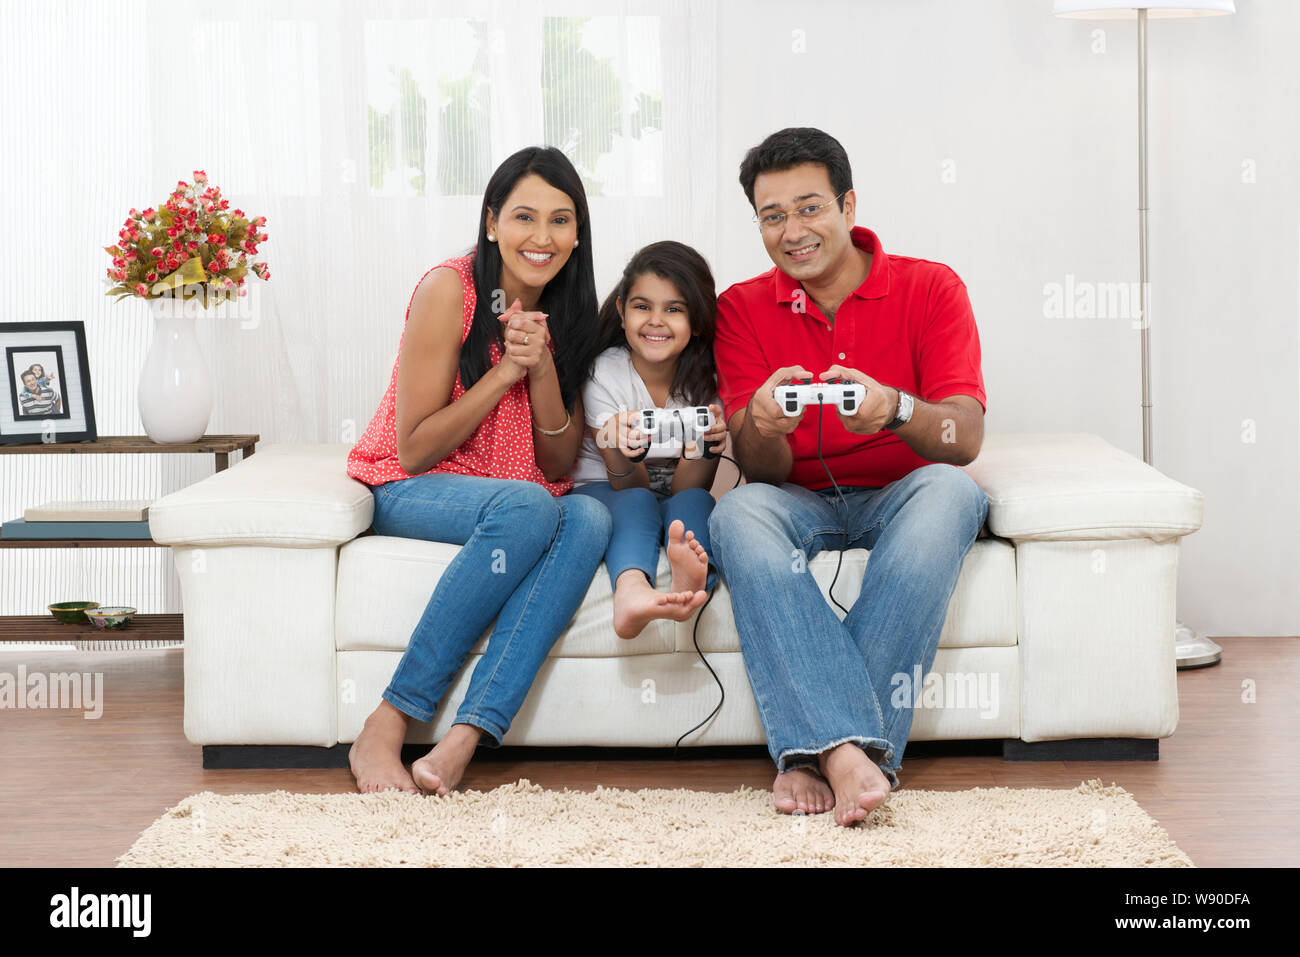 Family Playing Video Game At Home Stock Photo Alamy